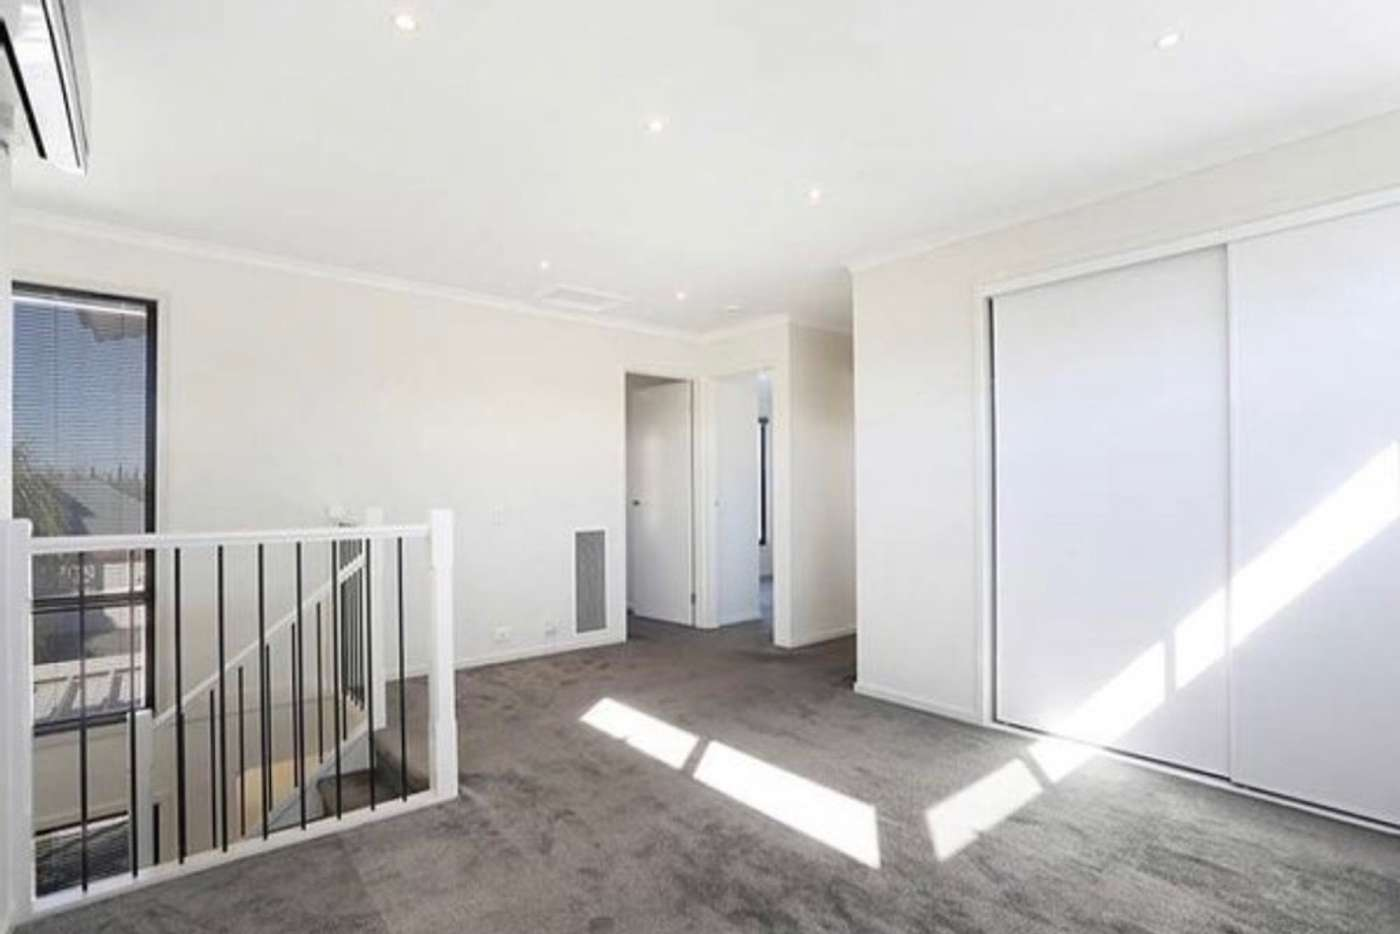 Seventh view of Homely house listing, 3 Marino Lane, Caroline Springs VIC 3023